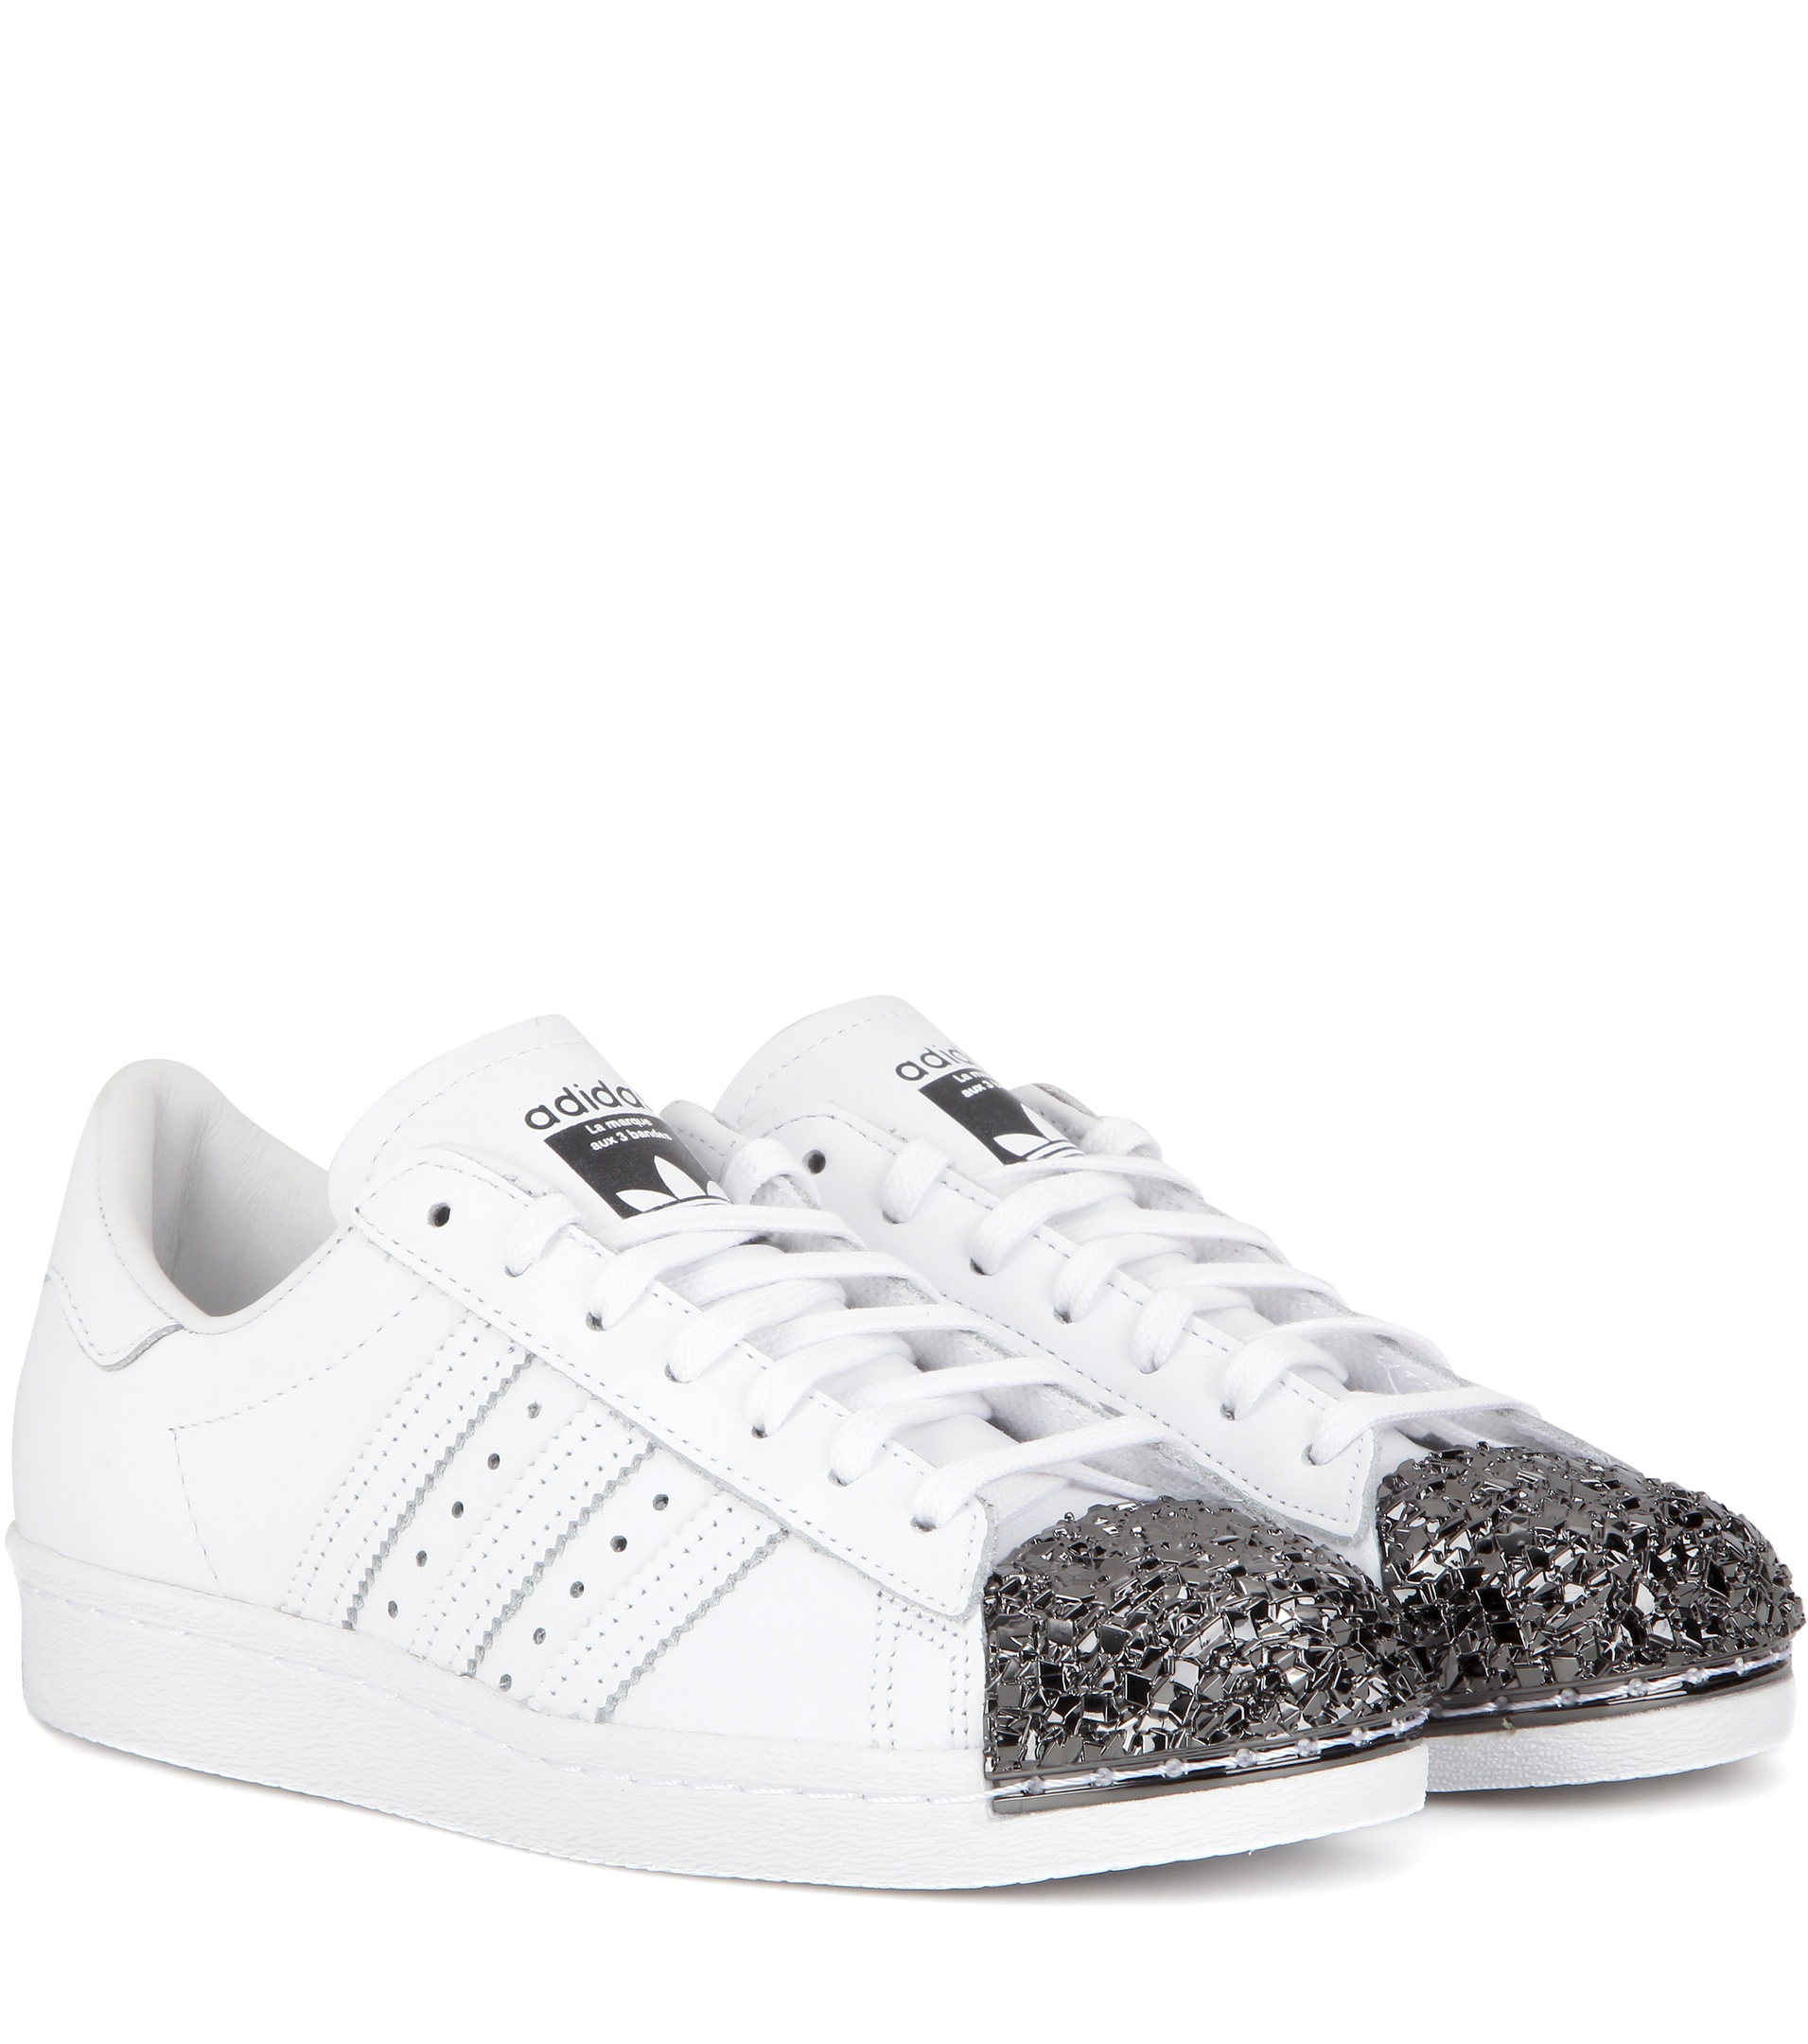 adidas originals superstar 80s metal toe leather sneakers. Black Bedroom Furniture Sets. Home Design Ideas